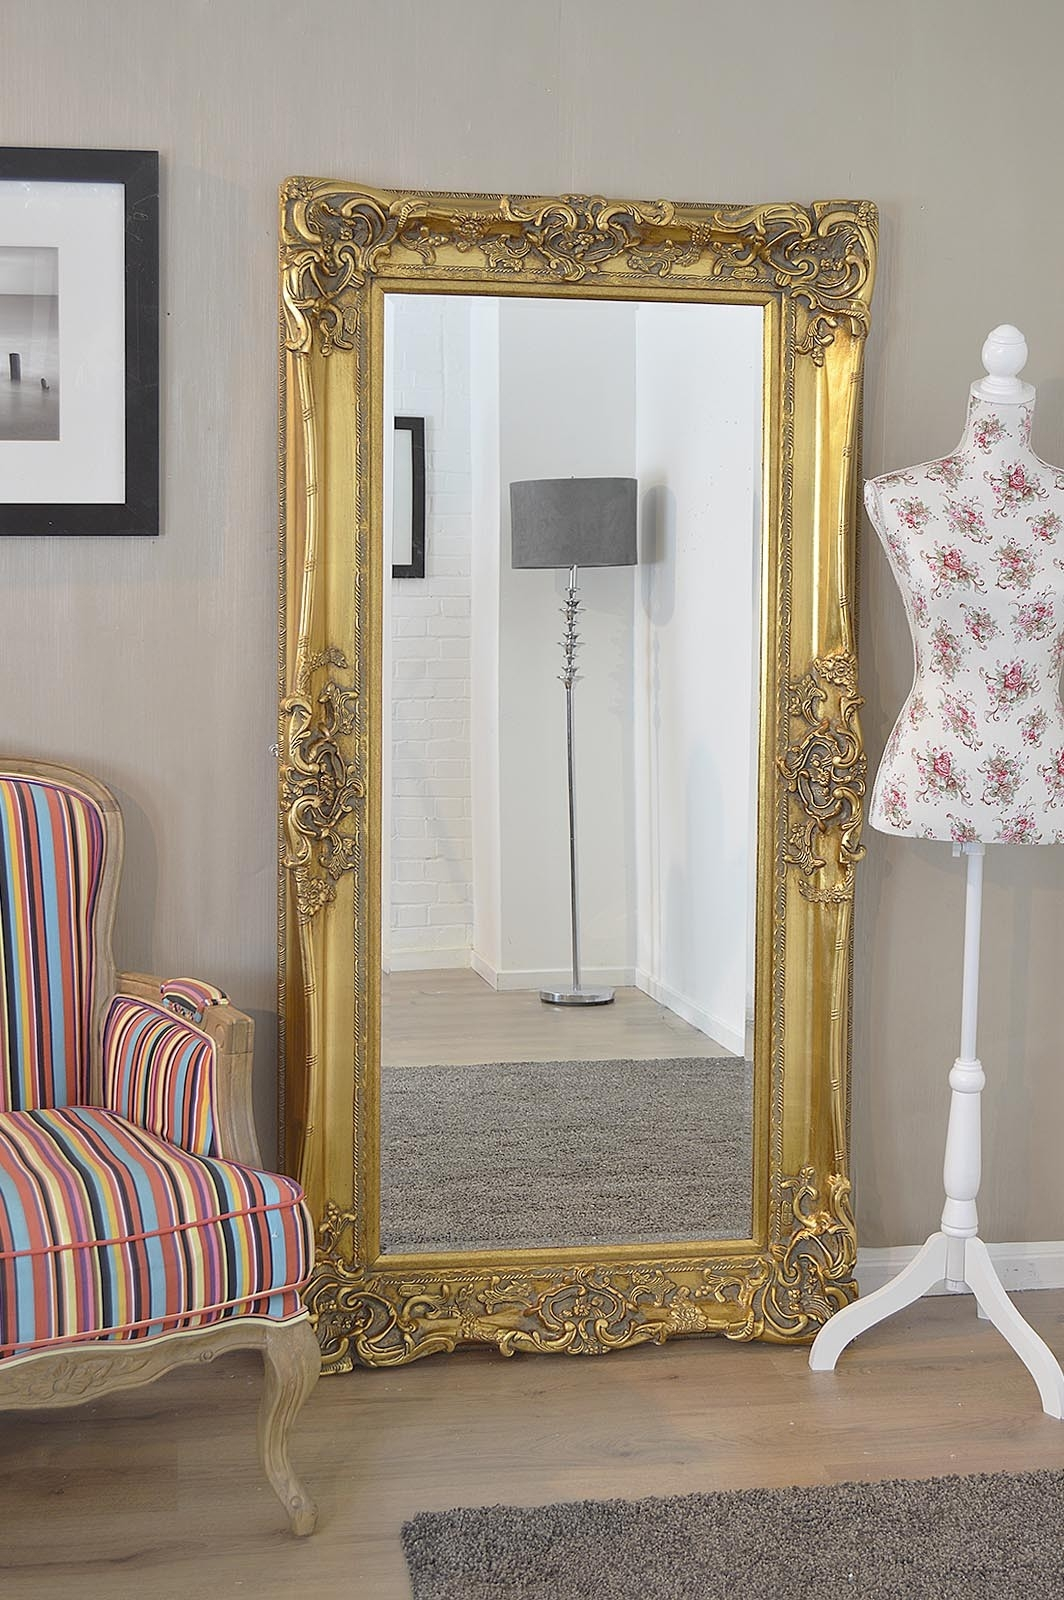 Large Mirror Large Gold Pebble Wall Mirror Abbey Gold Antique With Huge Ornate Mirror (Image 11 of 15)